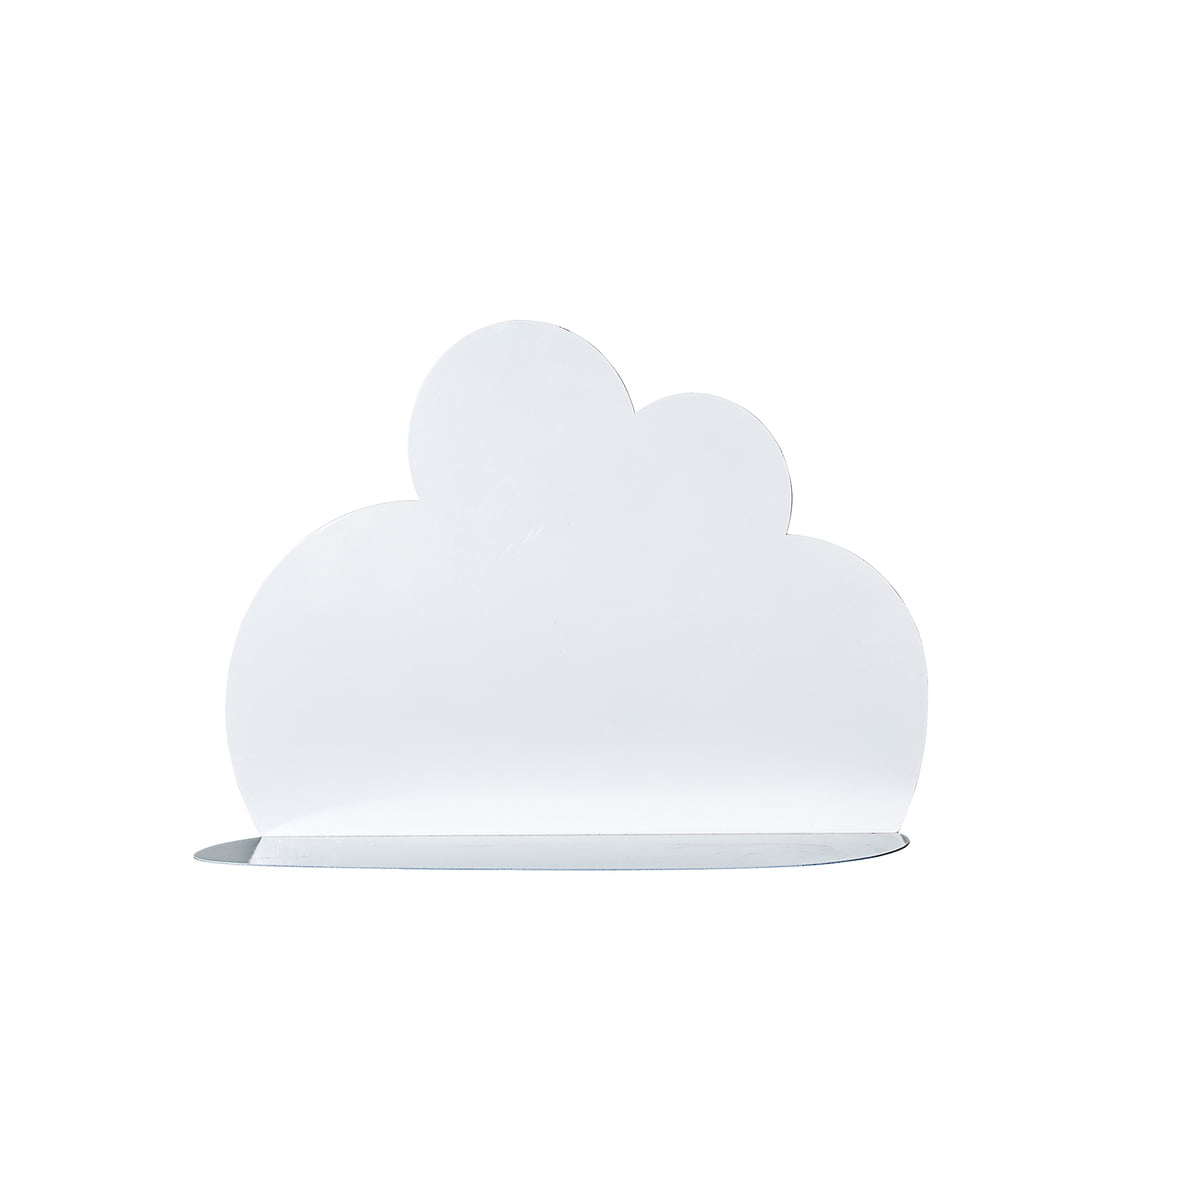 Das Bloomingville   Cloud Shelf In Small, Weiss